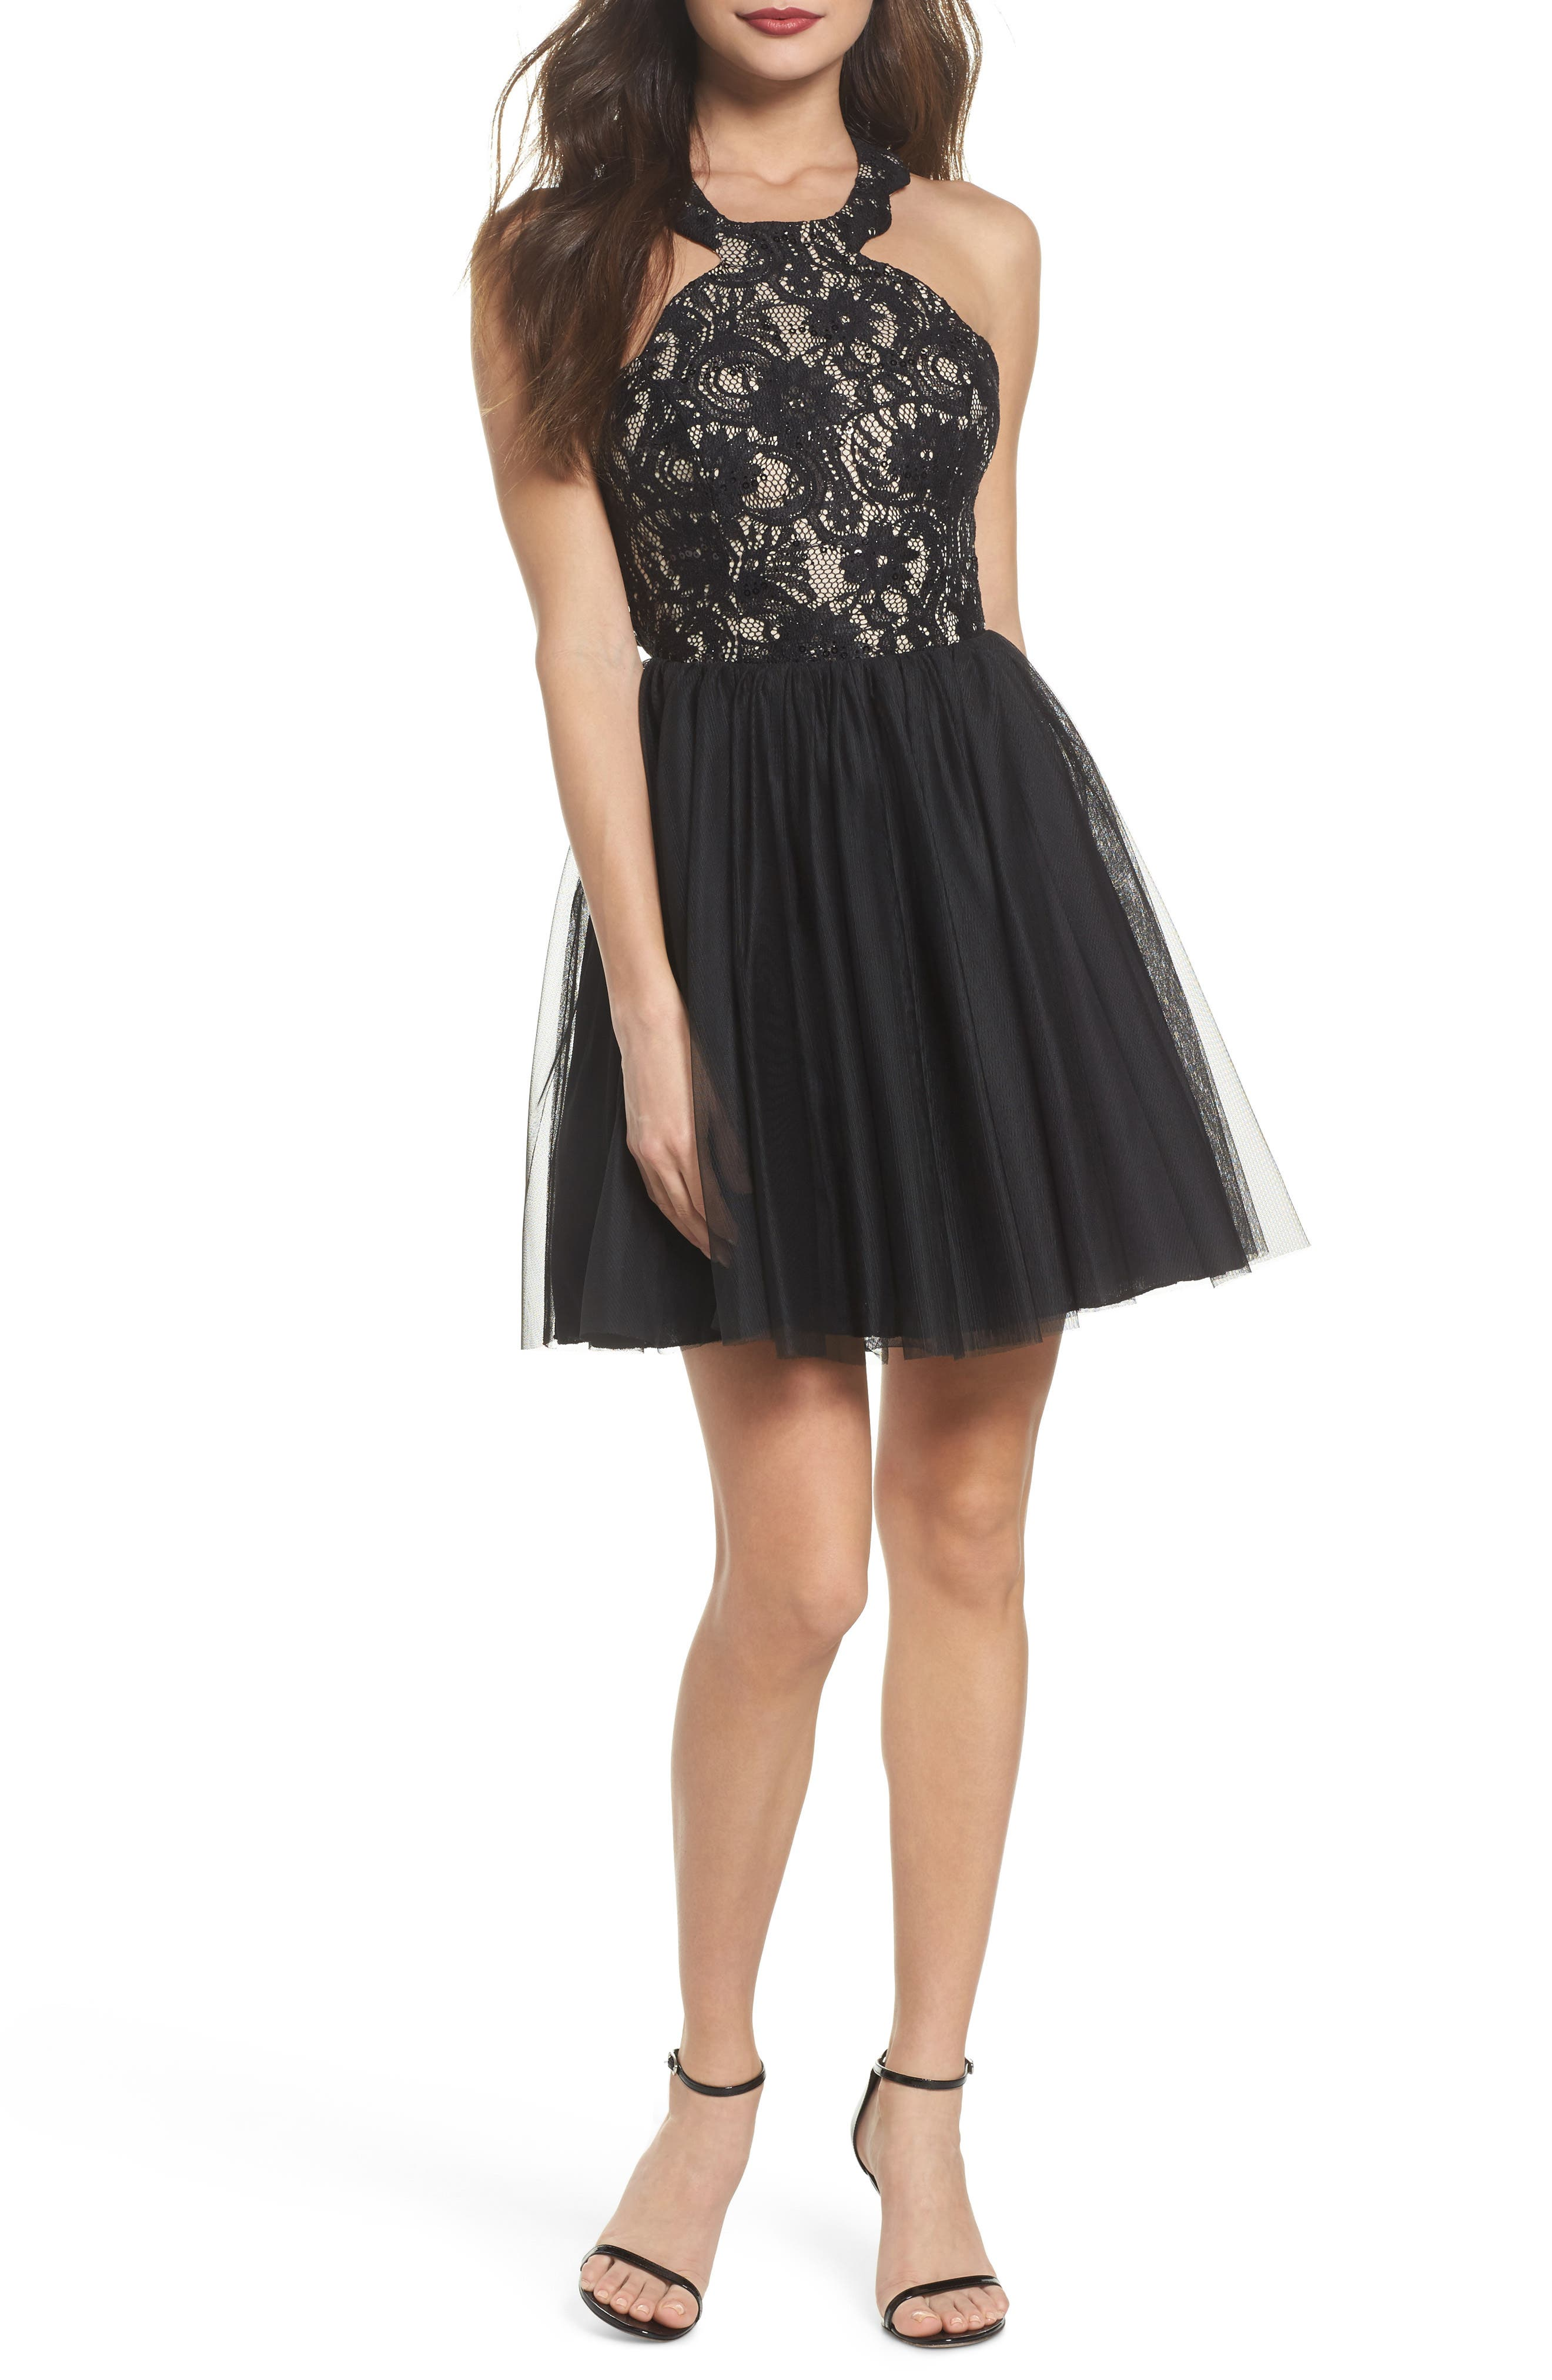 Alternate Image 1 Selected - Sequin Hearts Lace Halter Neck Dress